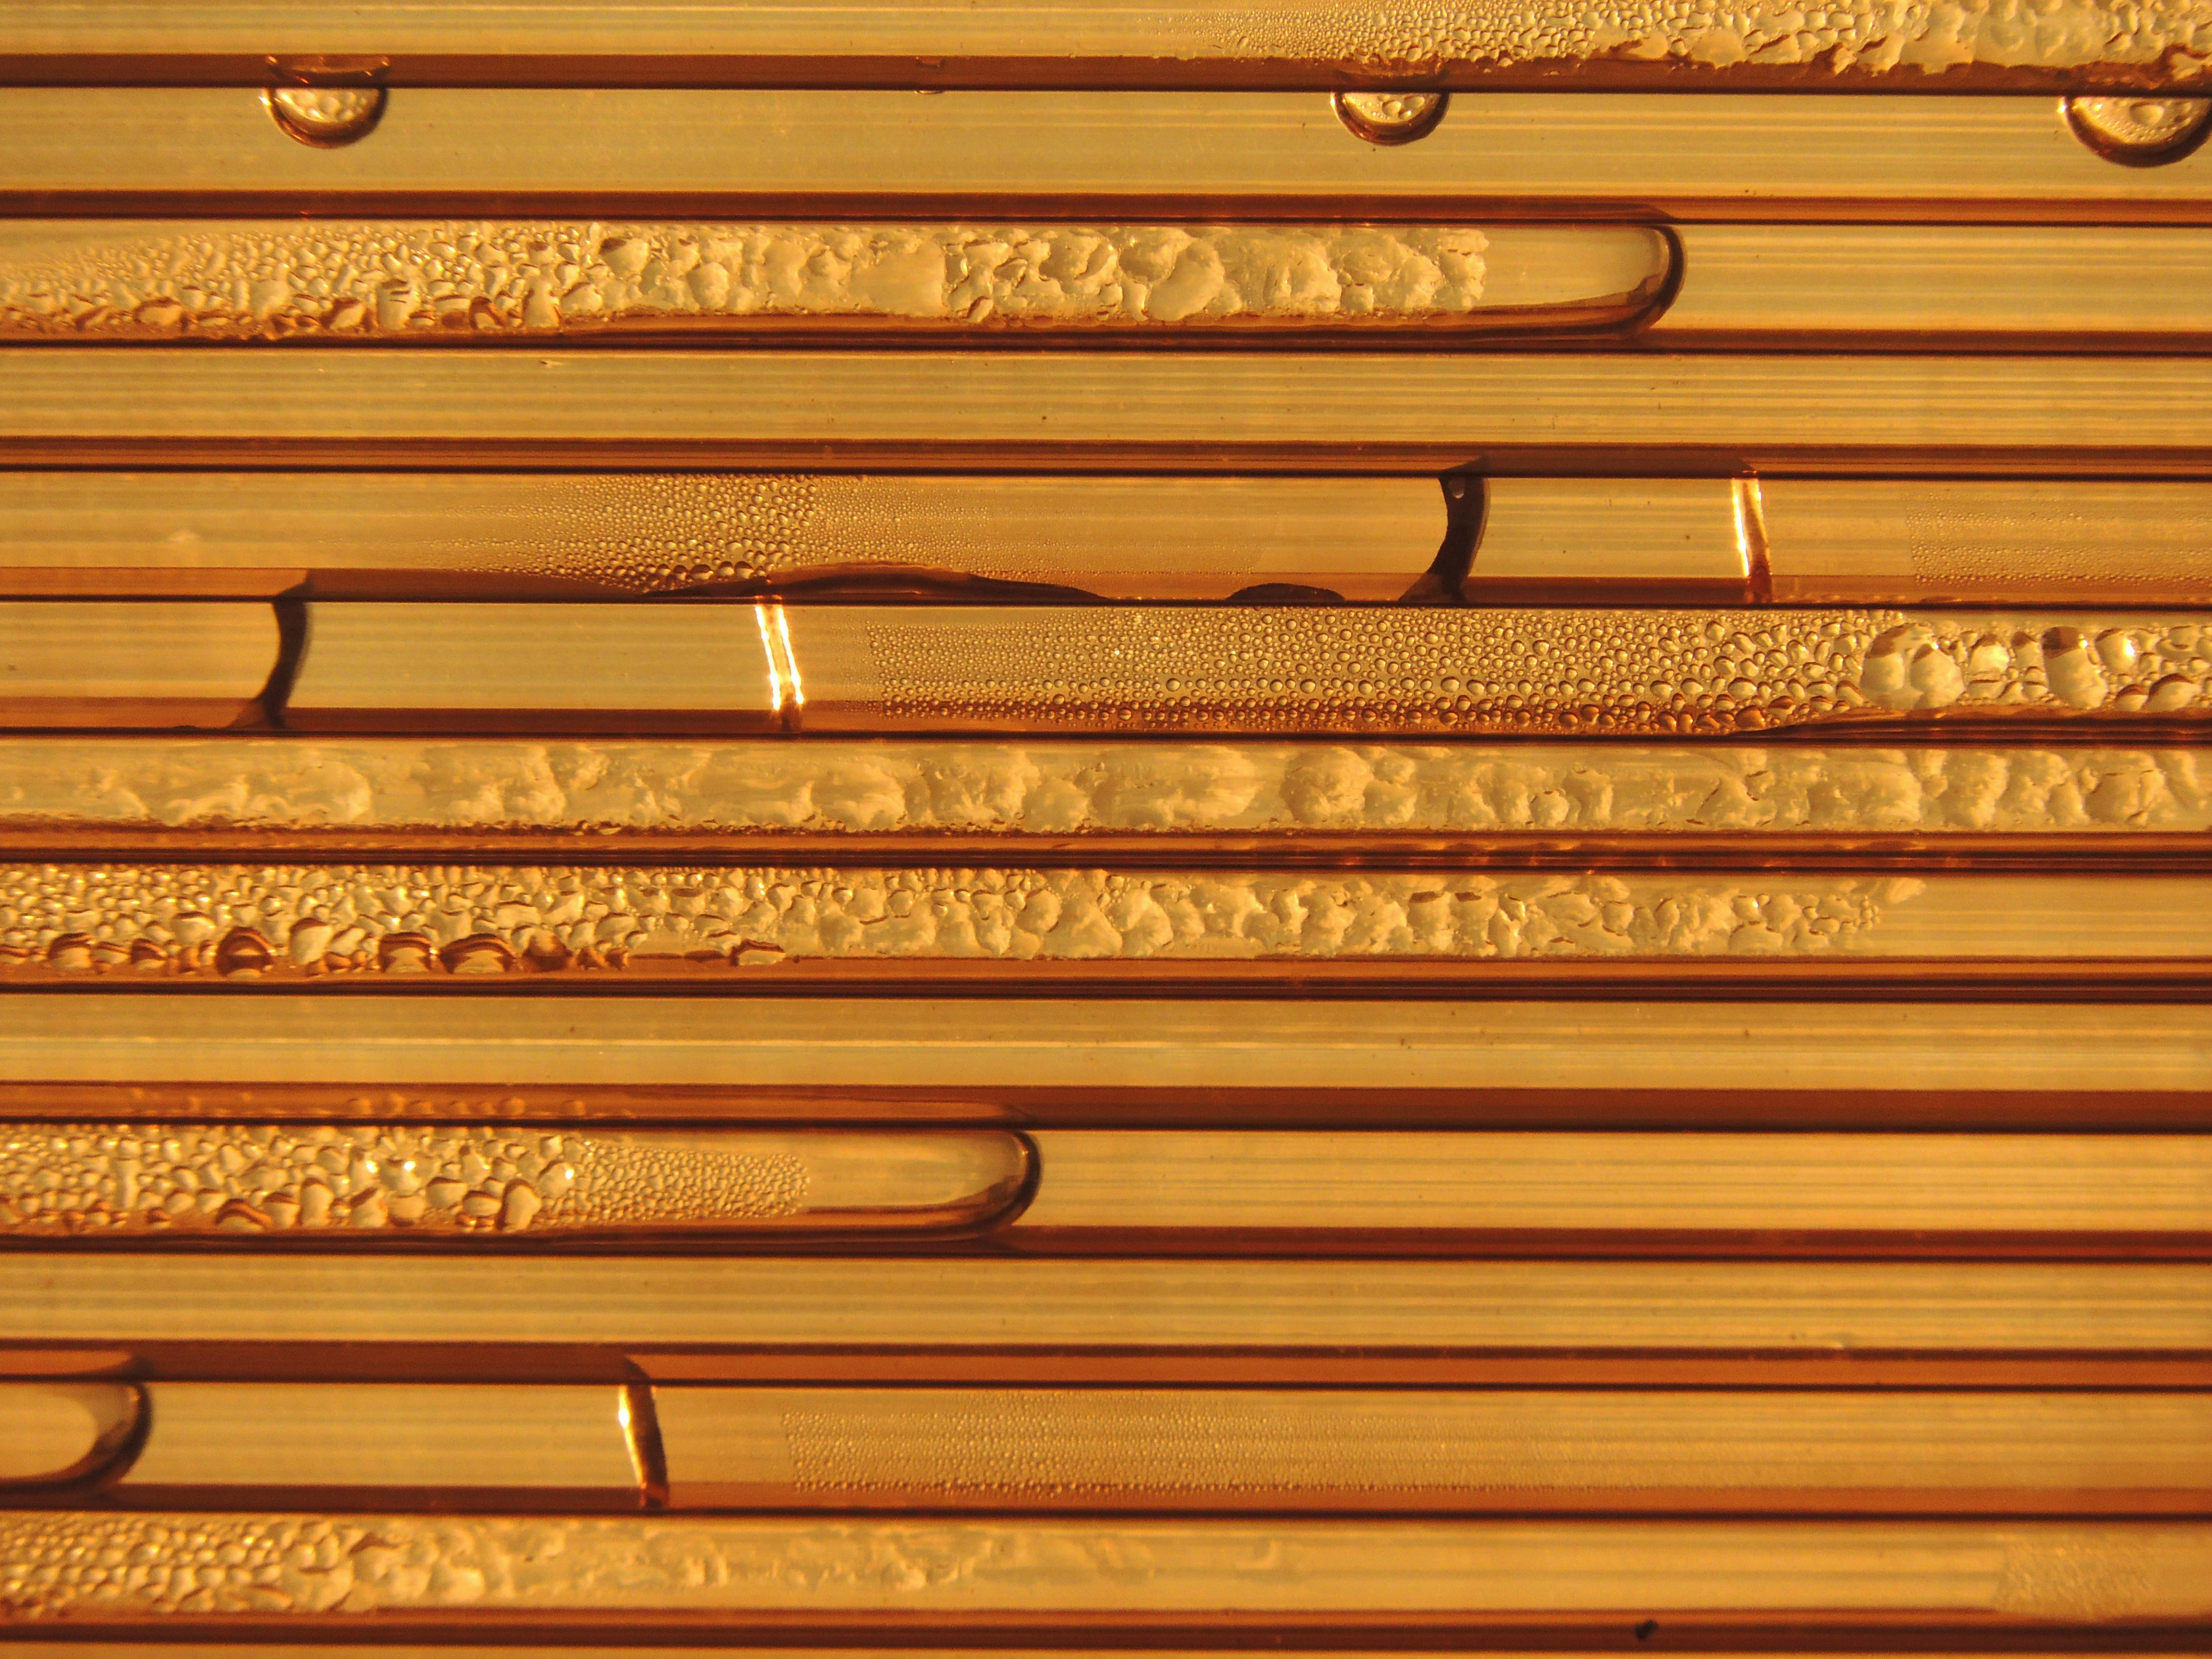 157675 download wallpaper Textures, Texture, Stripes, Streaks, Wood, Wooden, Drops, Water screensavers and pictures for free